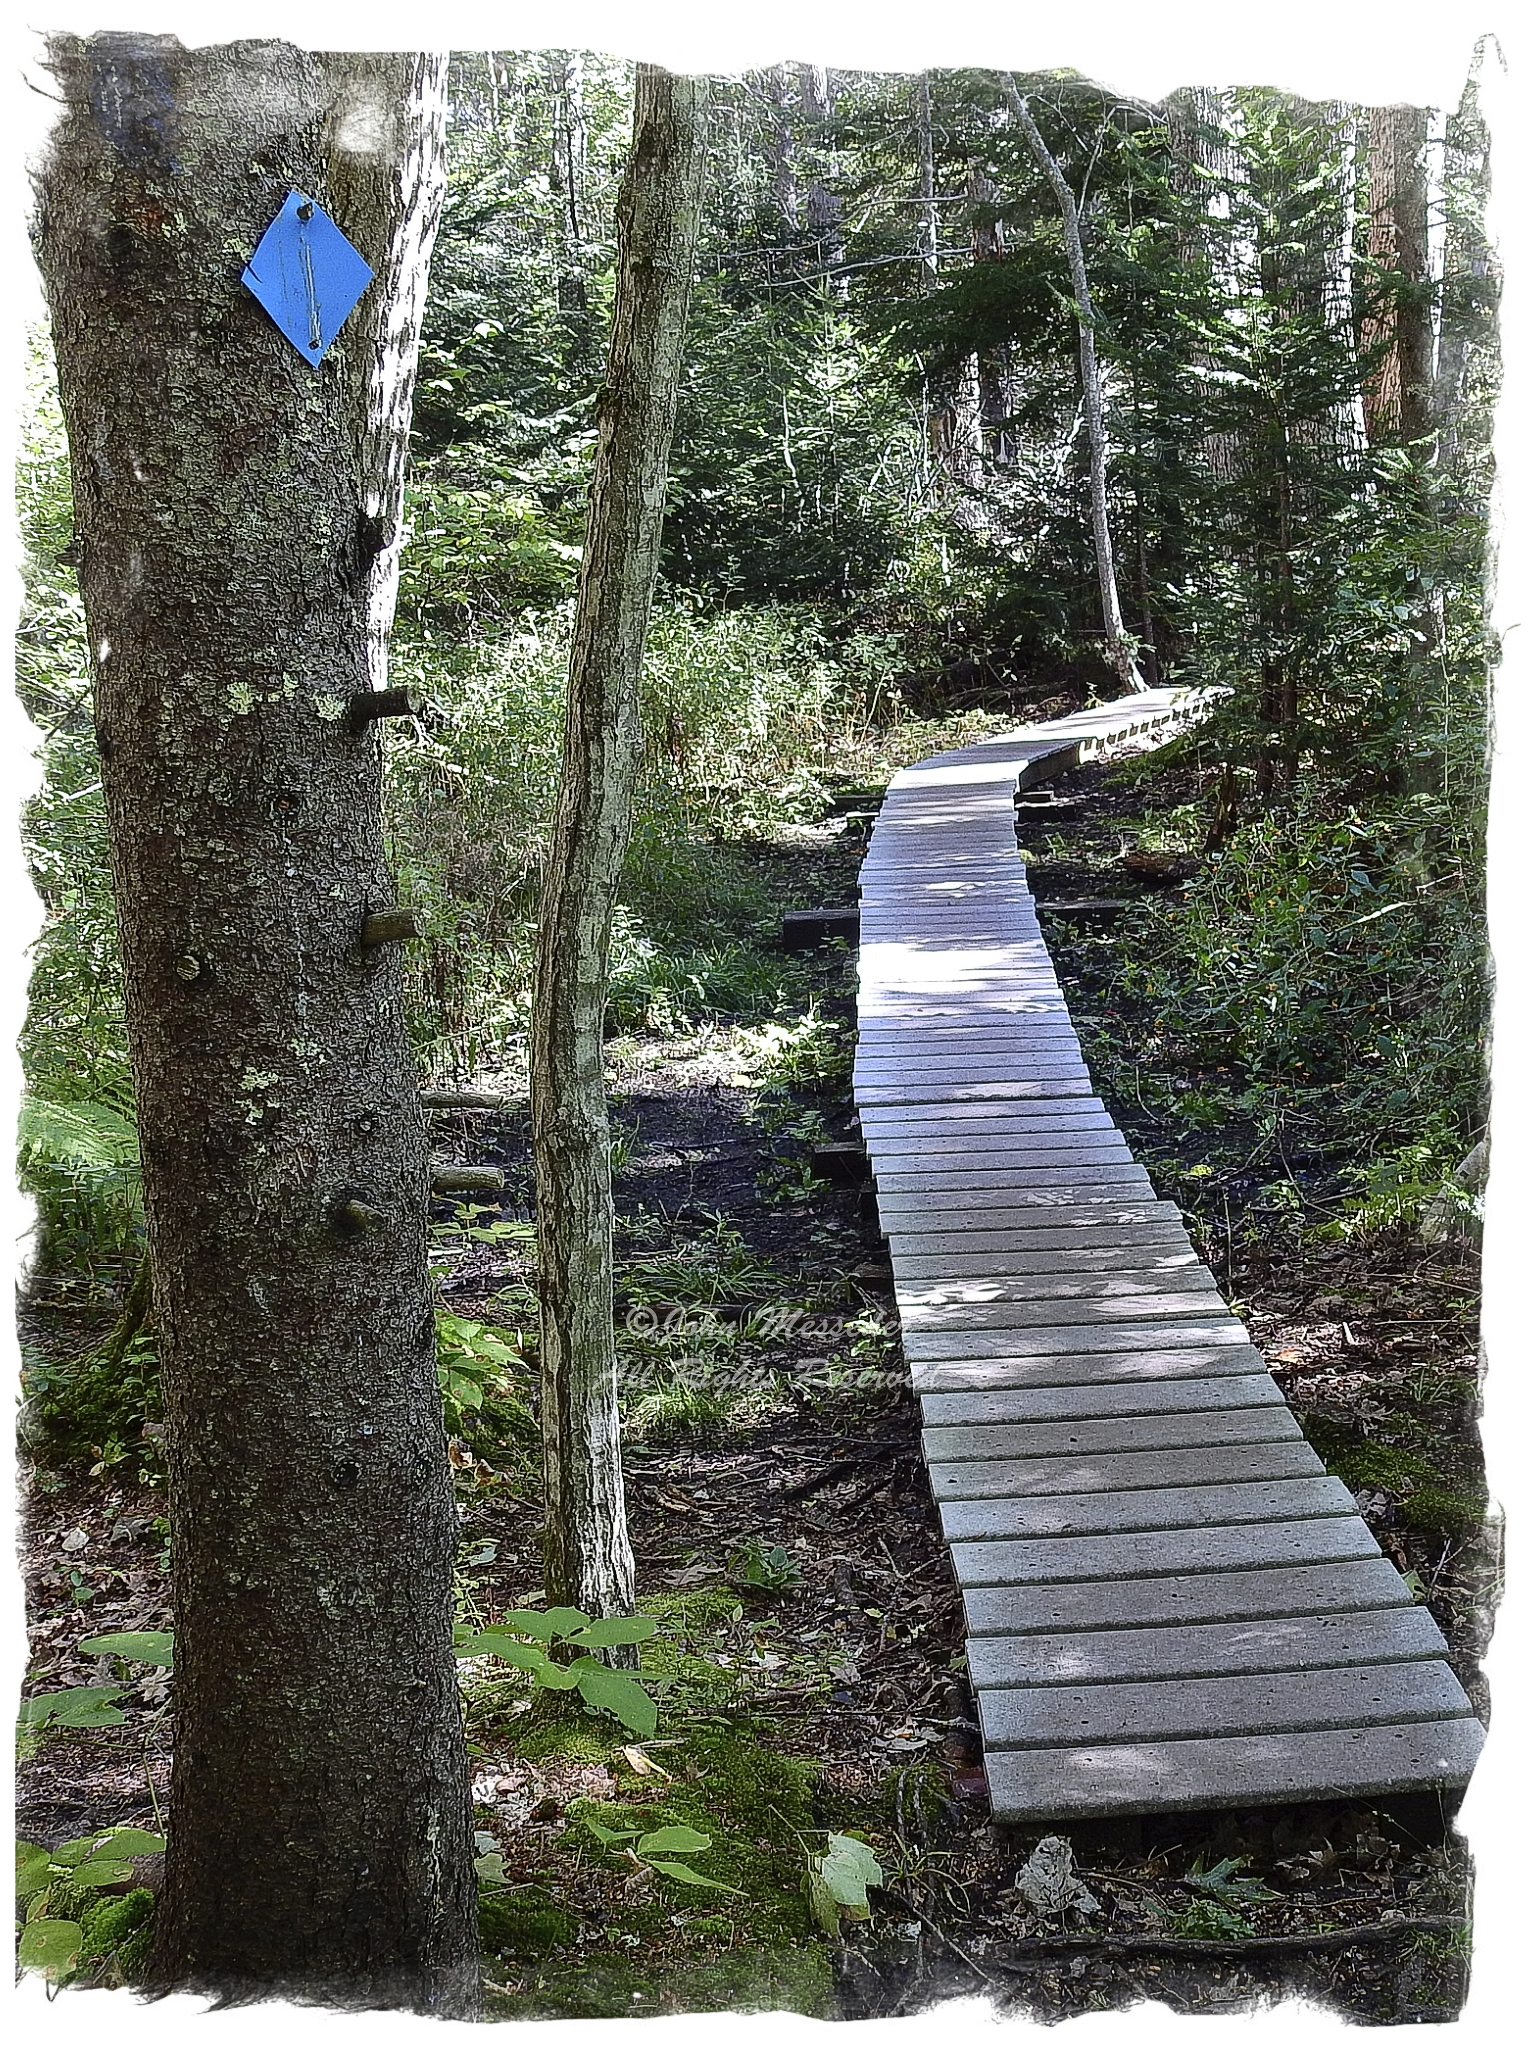 A section of boardwalk carries hikers across a wetland on a public trail across private land.